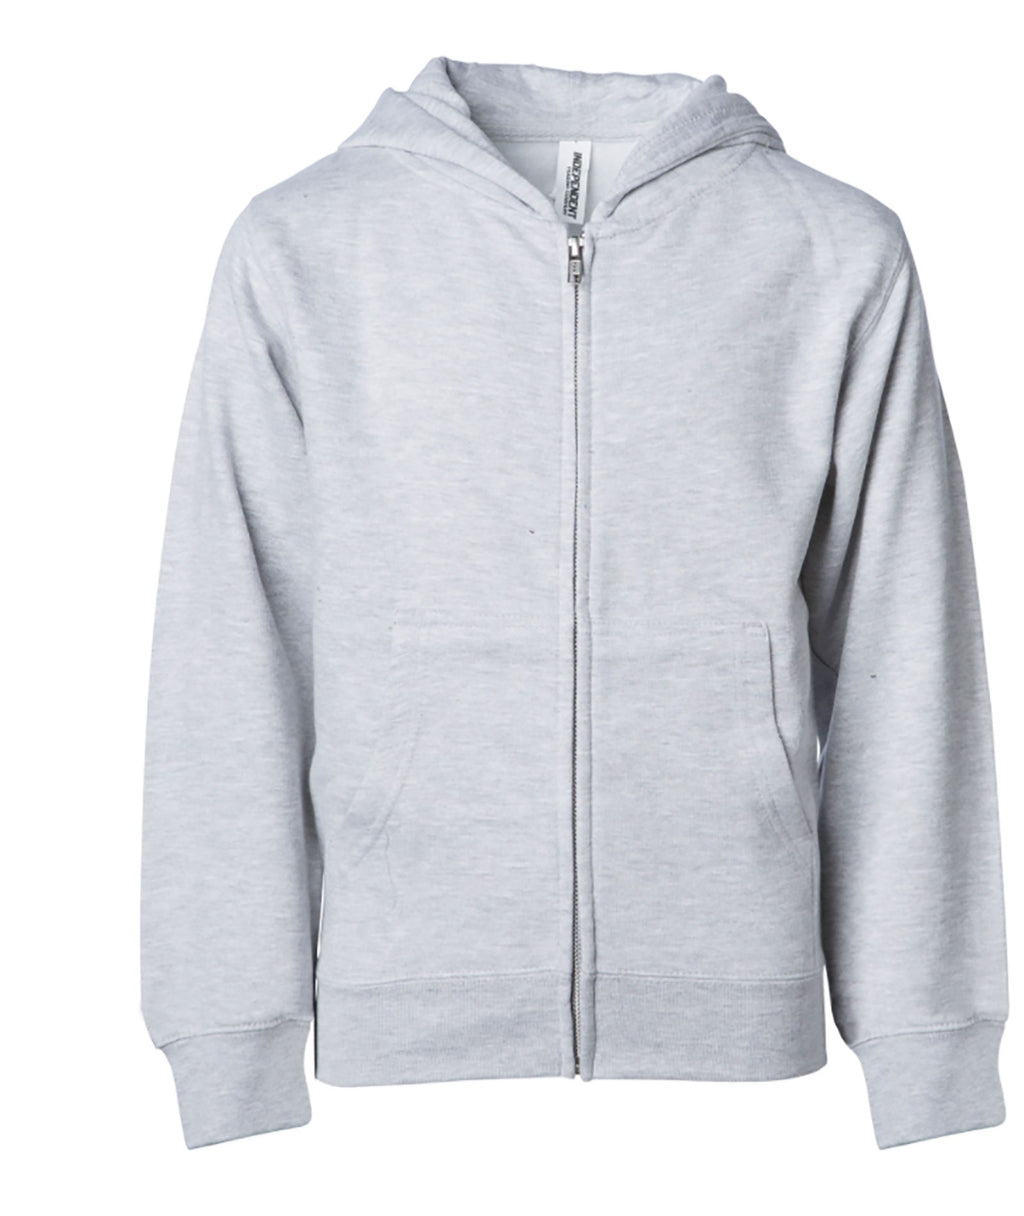 Gildan Adult Zip Up Hoodie in White, Grey or Light Grey